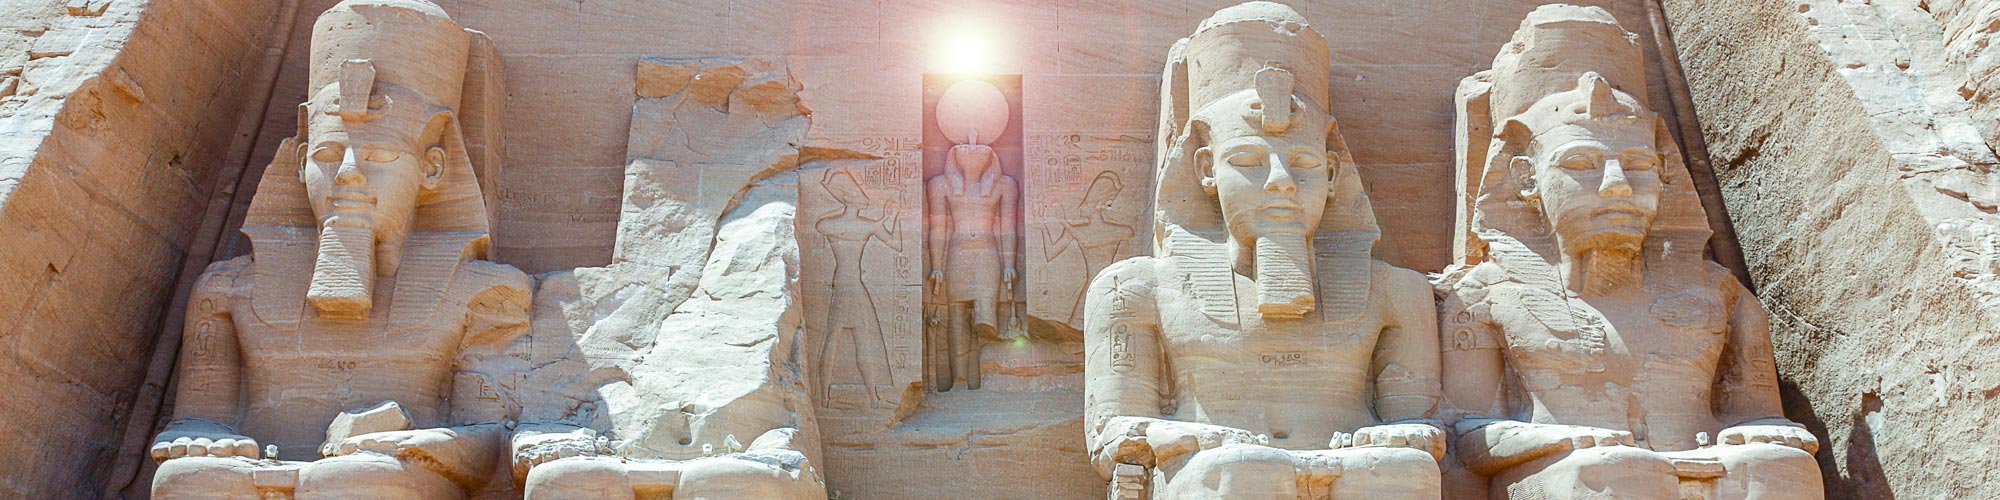 Abu Simbel - El Gouna Excursions - Tours from Hurghada